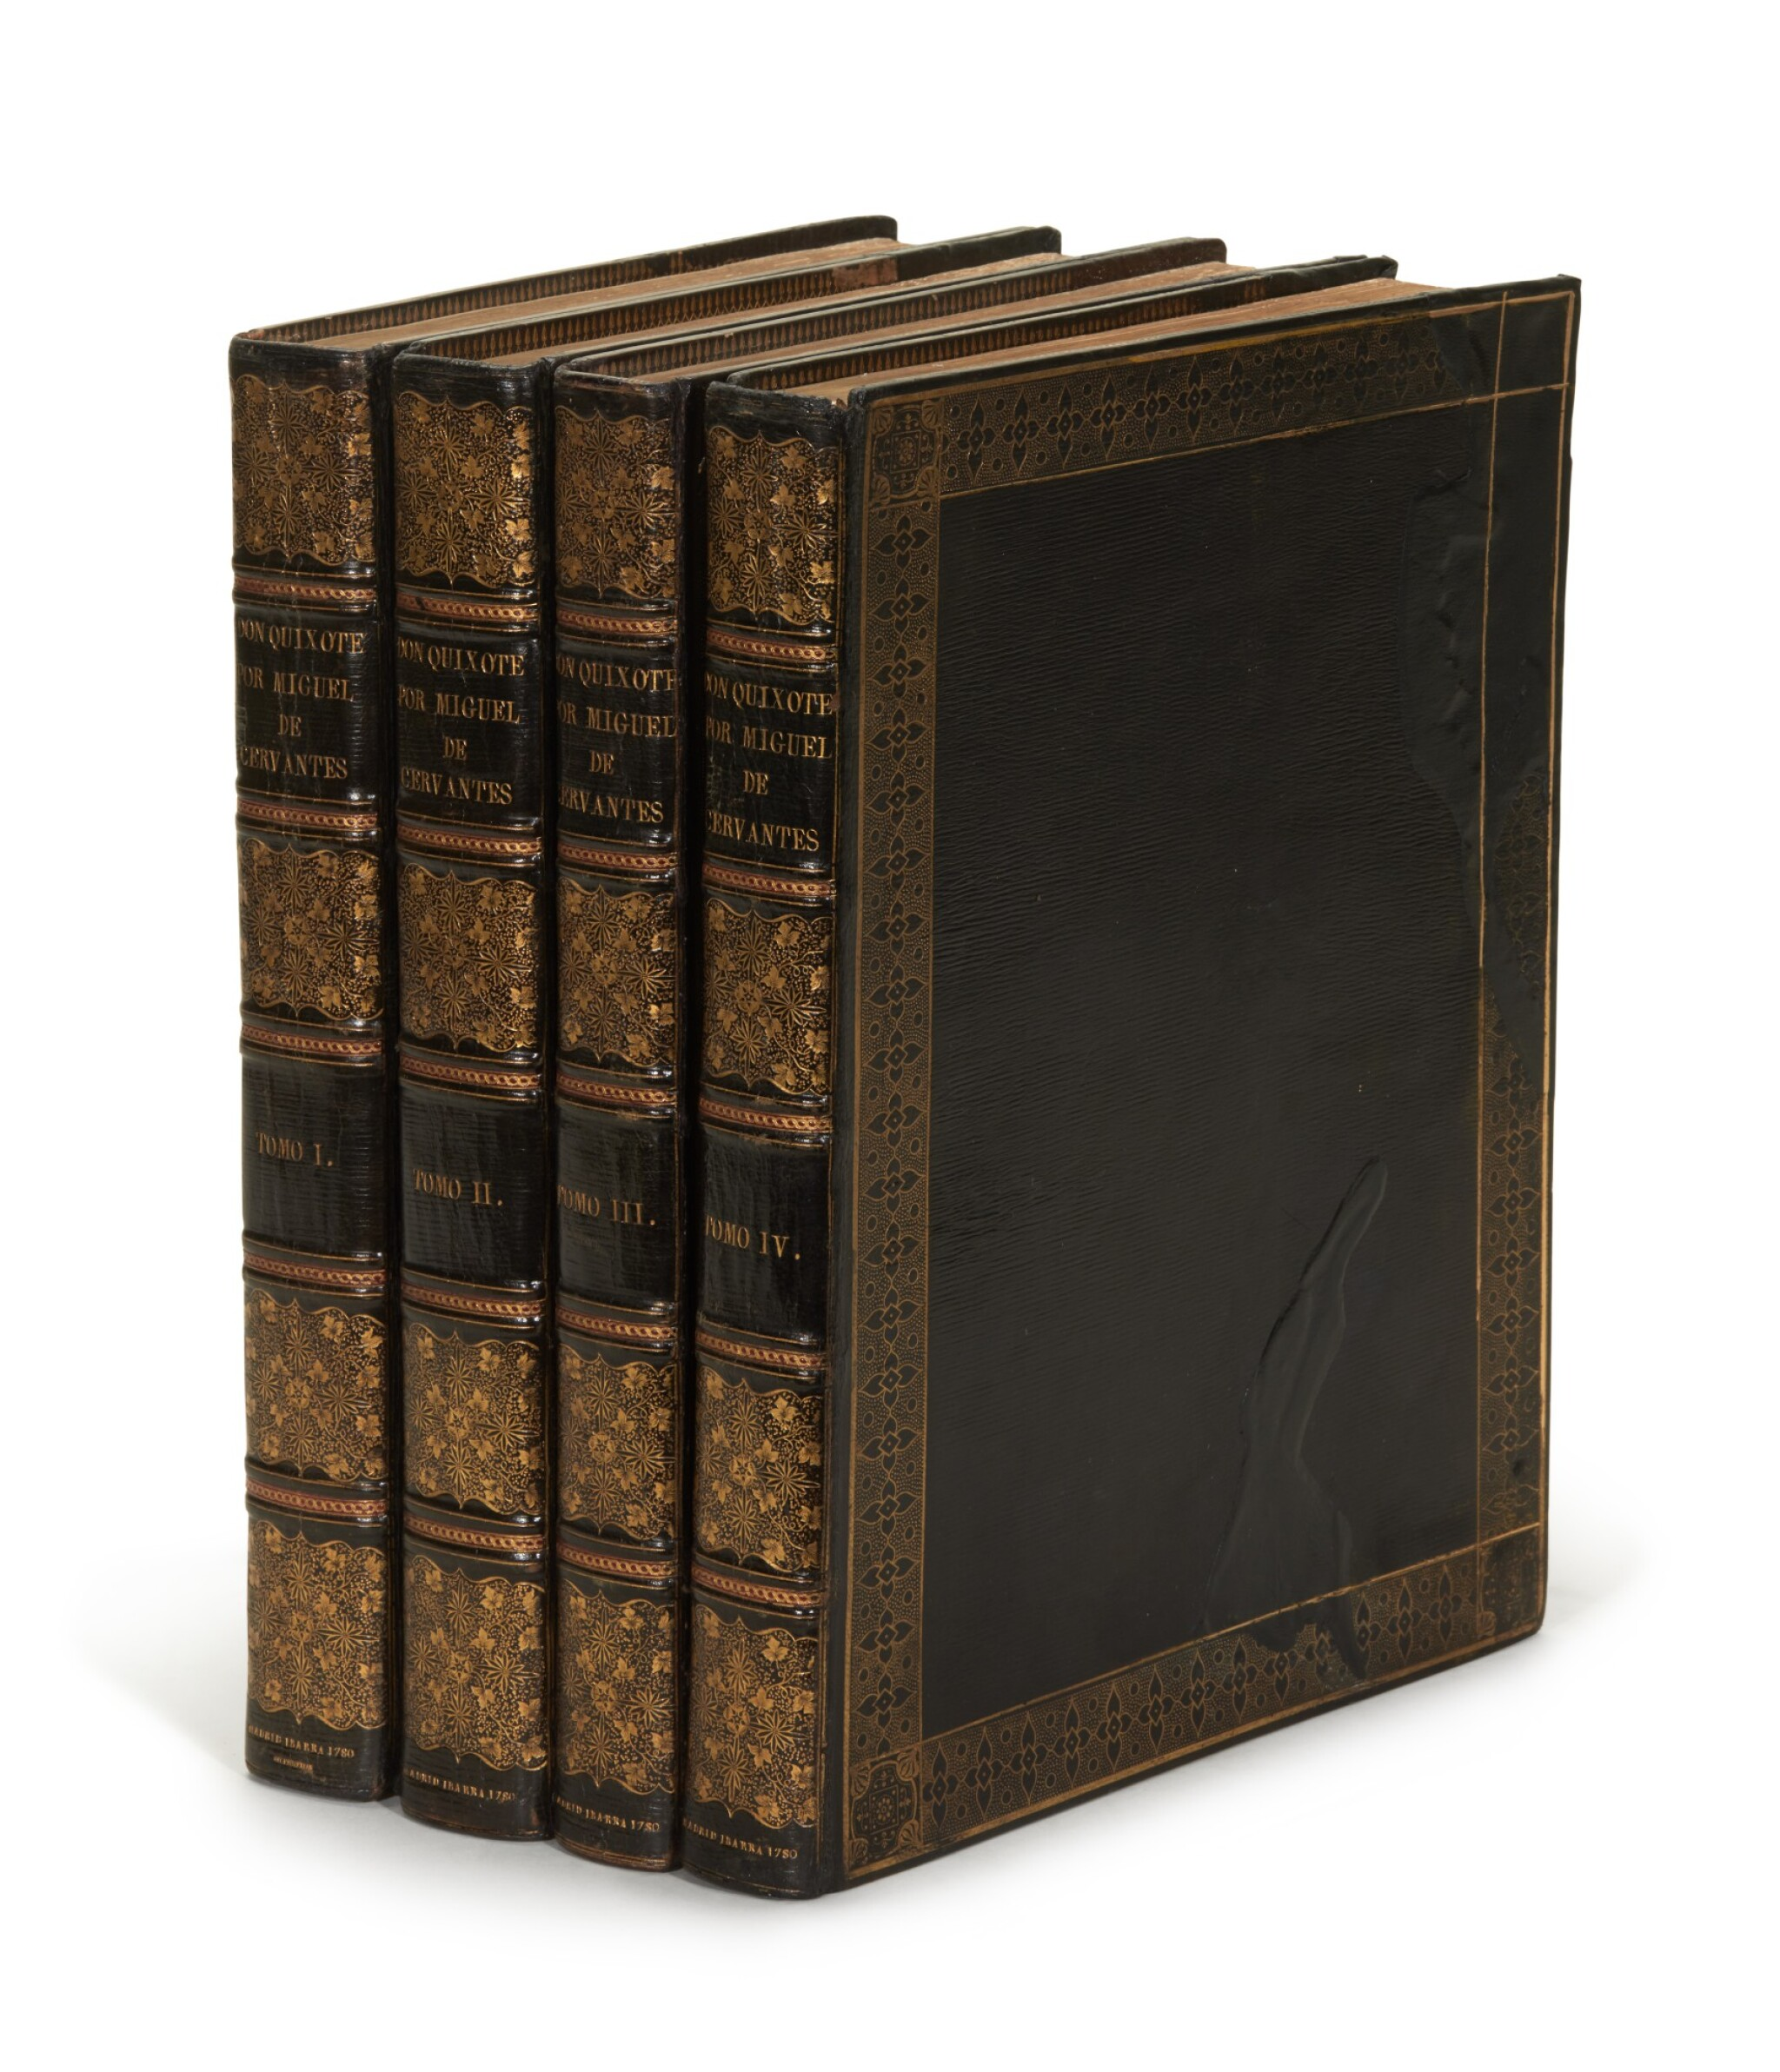 View full screen - View 1 of Lot 88. Cervantes, Don Quixote, Madrid, Ibarra, 1780, 4 volumes, navy morocco gilt by Bozérian.